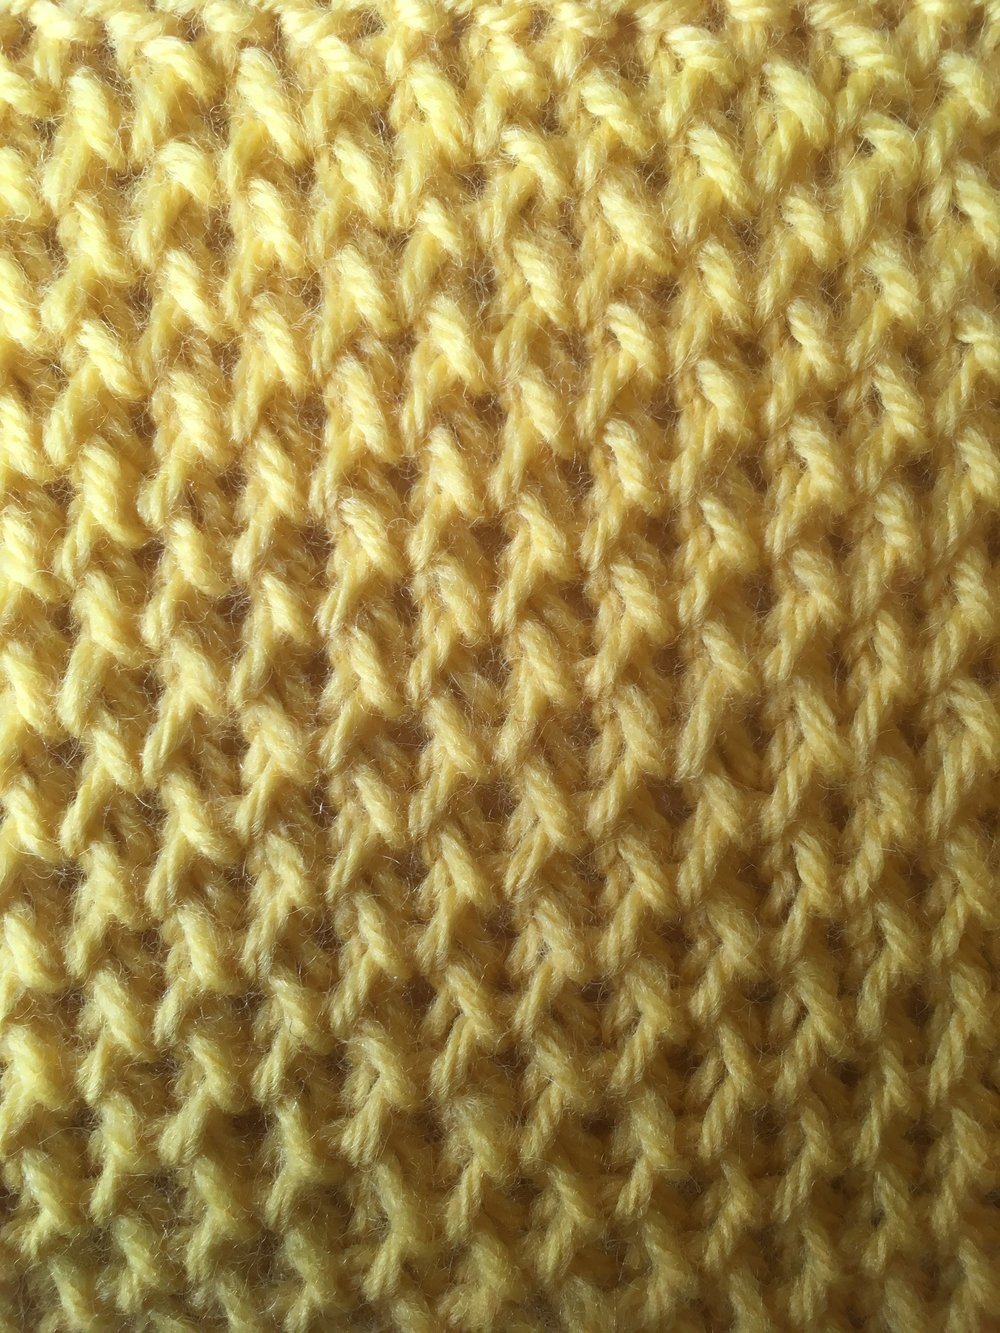 Hexagon stitch has a wonderful textural pattern and has a very soft cushioned feel.